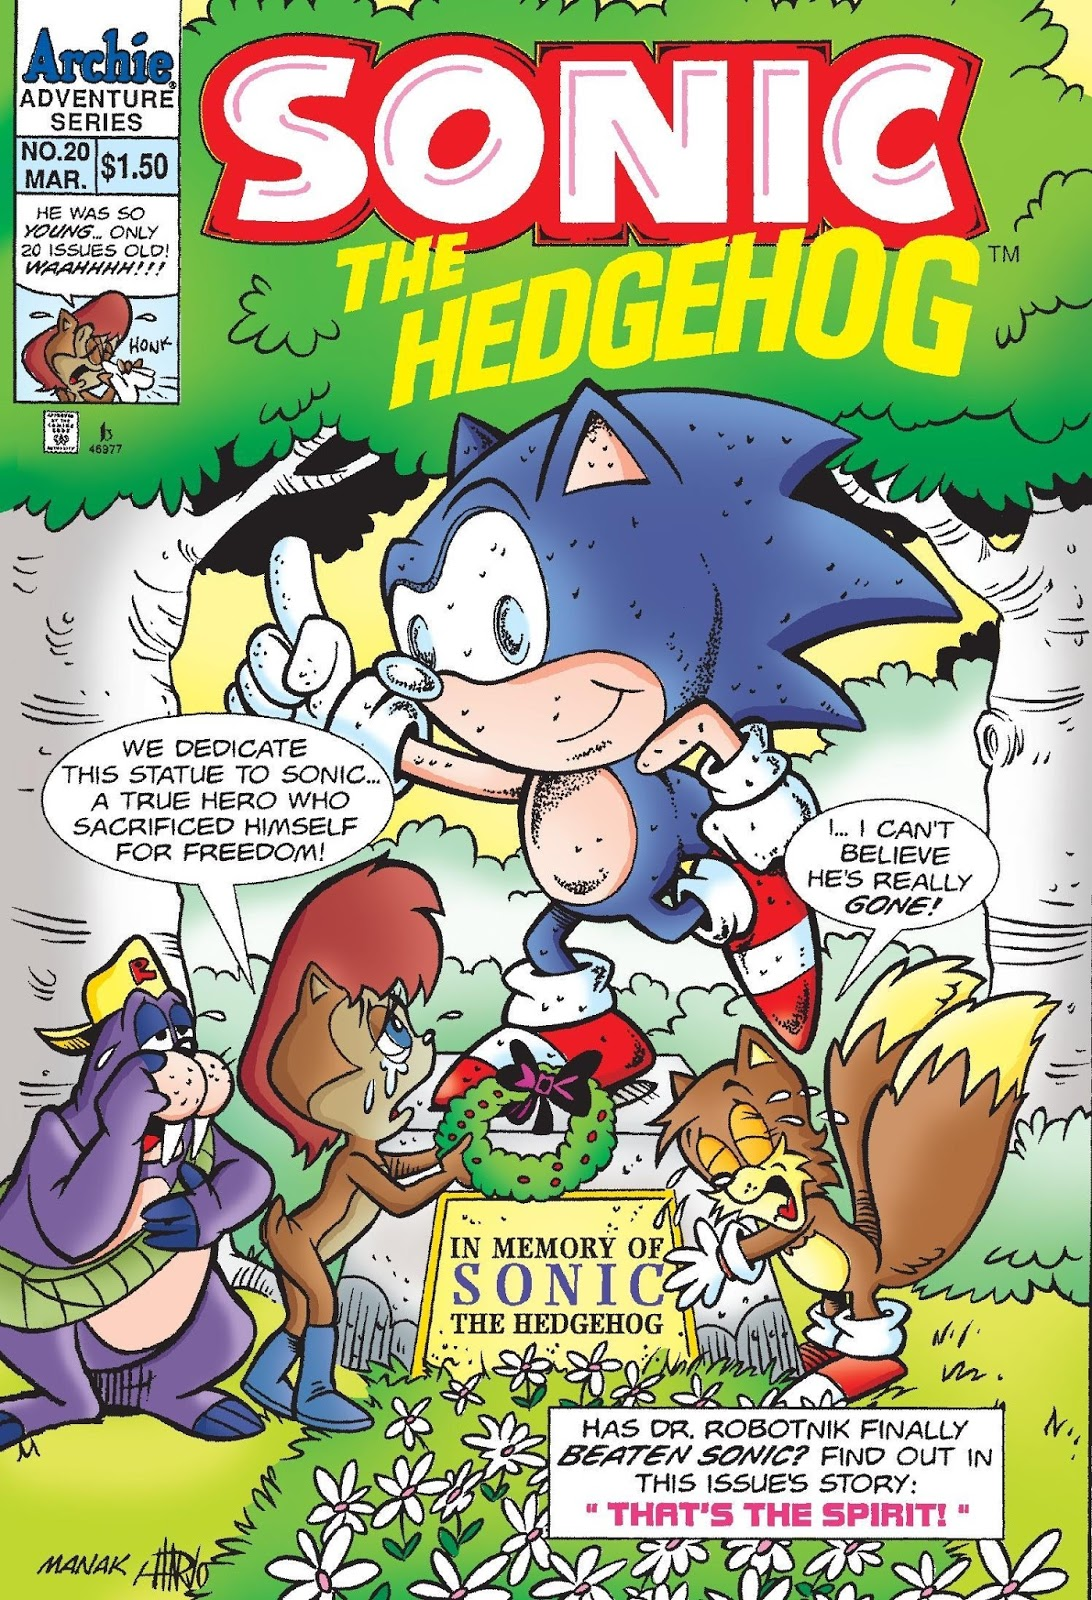 sonic 06 how to get to new city